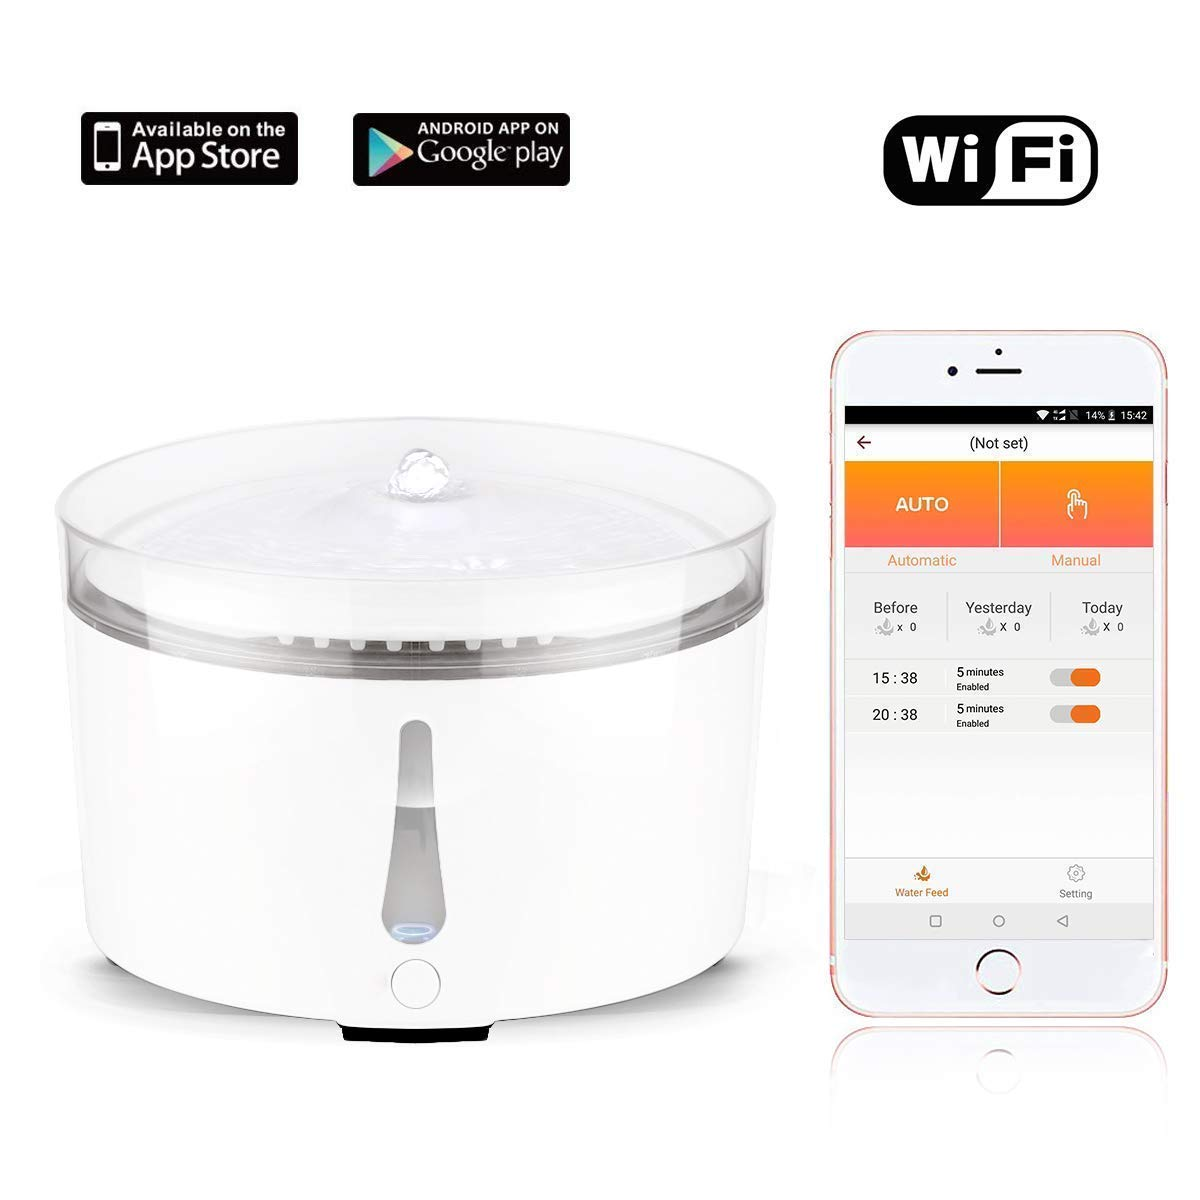 Uervoton Pet Water Fountain, Smart Automatic Electric Dog Cat m Water Fountain - App Remote Control - Water Shortage Alert - Water Level Monitor, 100oz (Fountain) ...